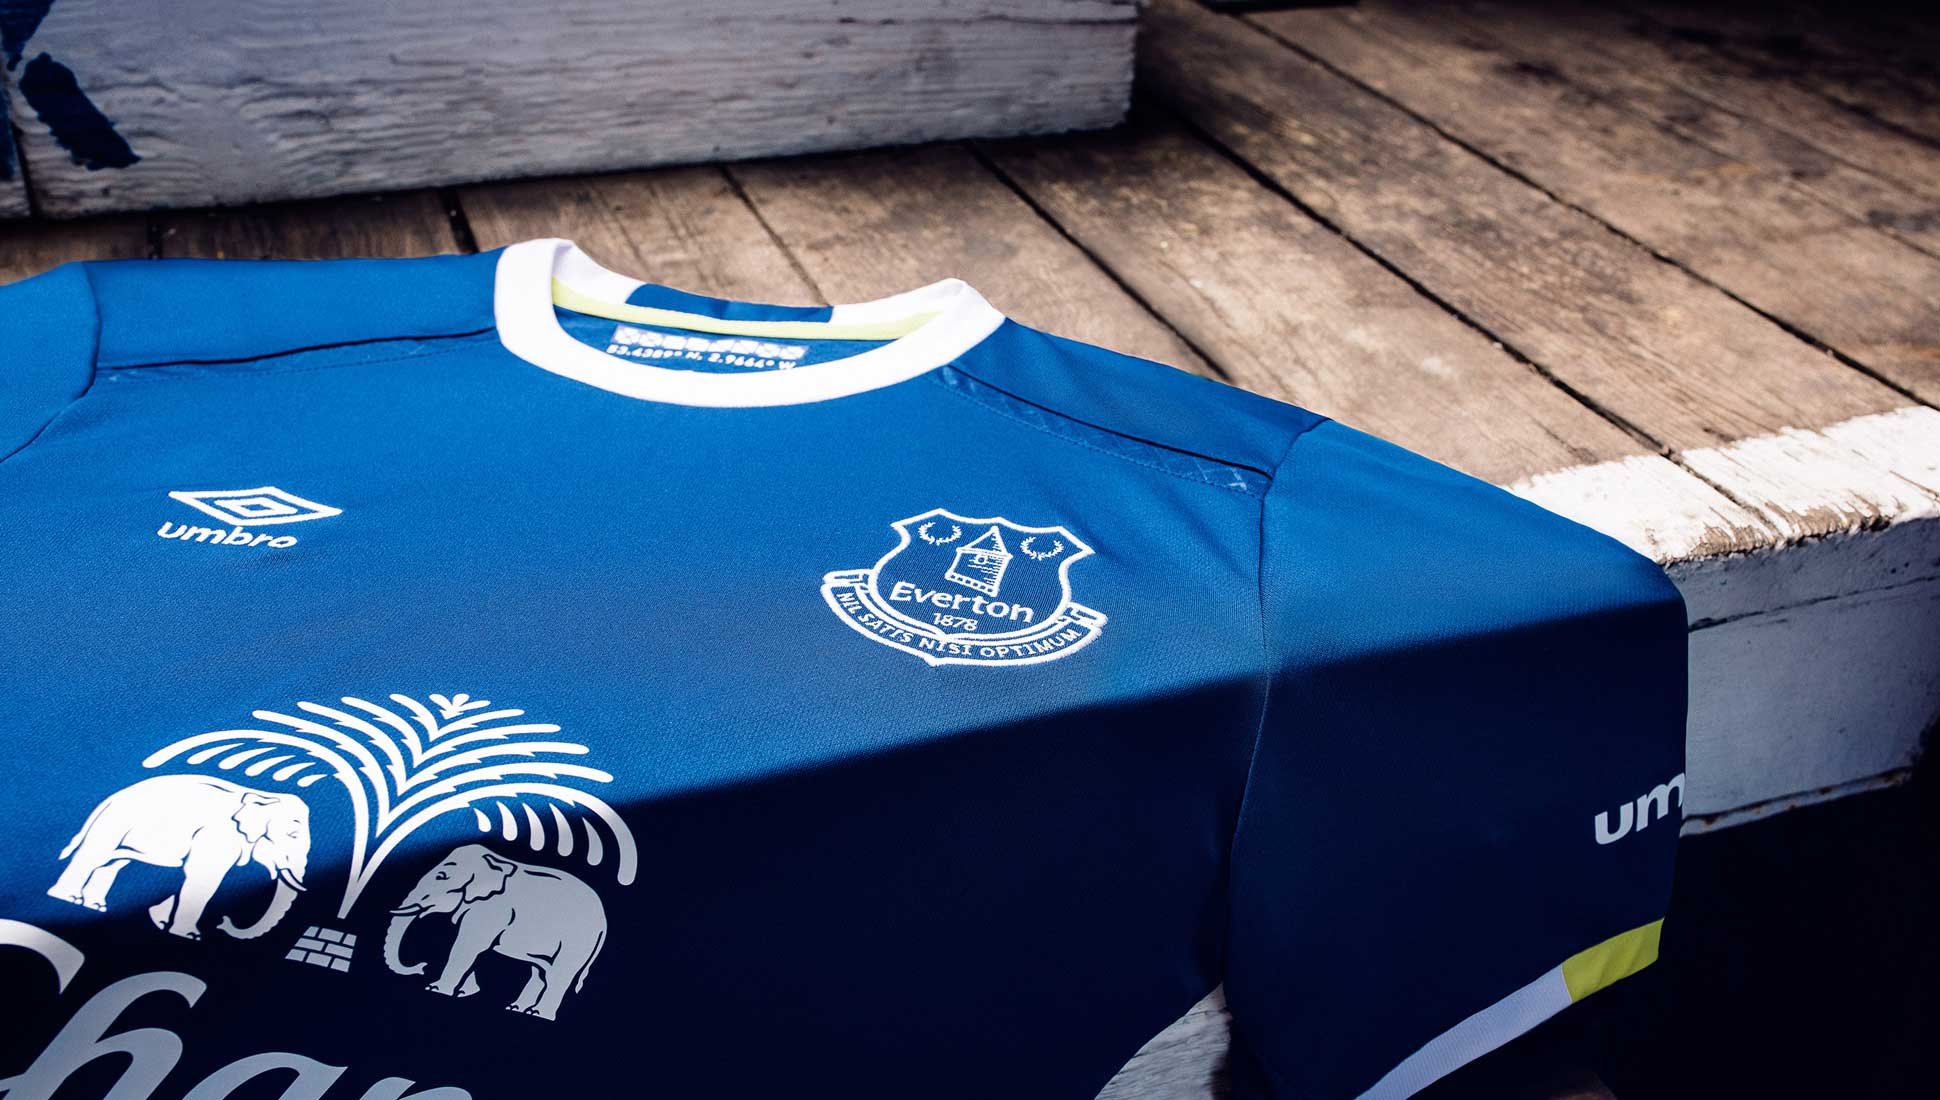 umbro-everton-16-17-2